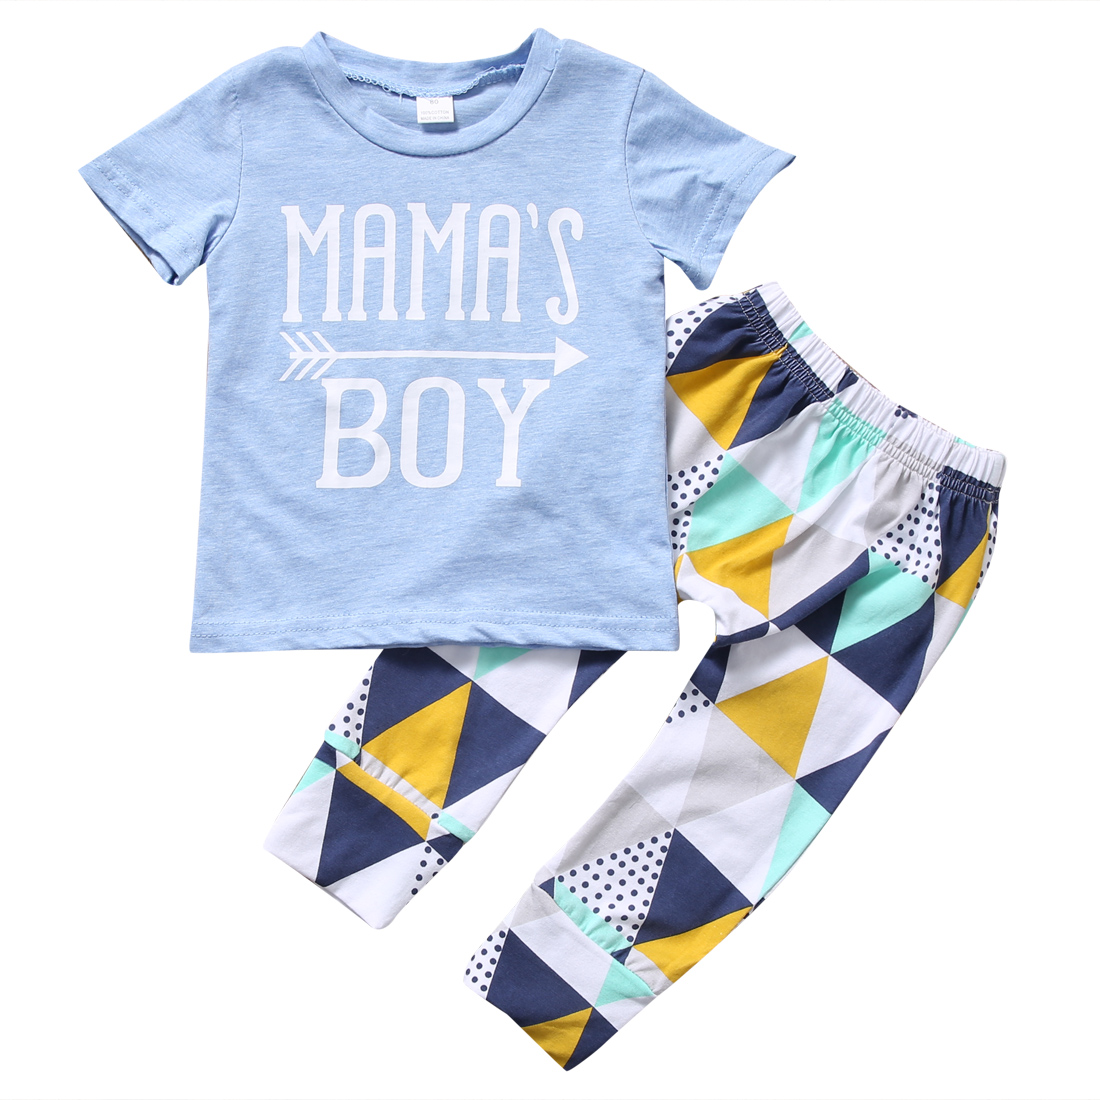 2017 Newborn Baby Boy Clothes Summer Short Sleeve Mama's Boy Cotton T-shirt Tops Pant 2PCS Outfit Toddler Kids Clothing Set 2017 new fashion kids clothes off shoulder camo crop tops hole jean denim pant 2pcs outfit summer suit children clothing set